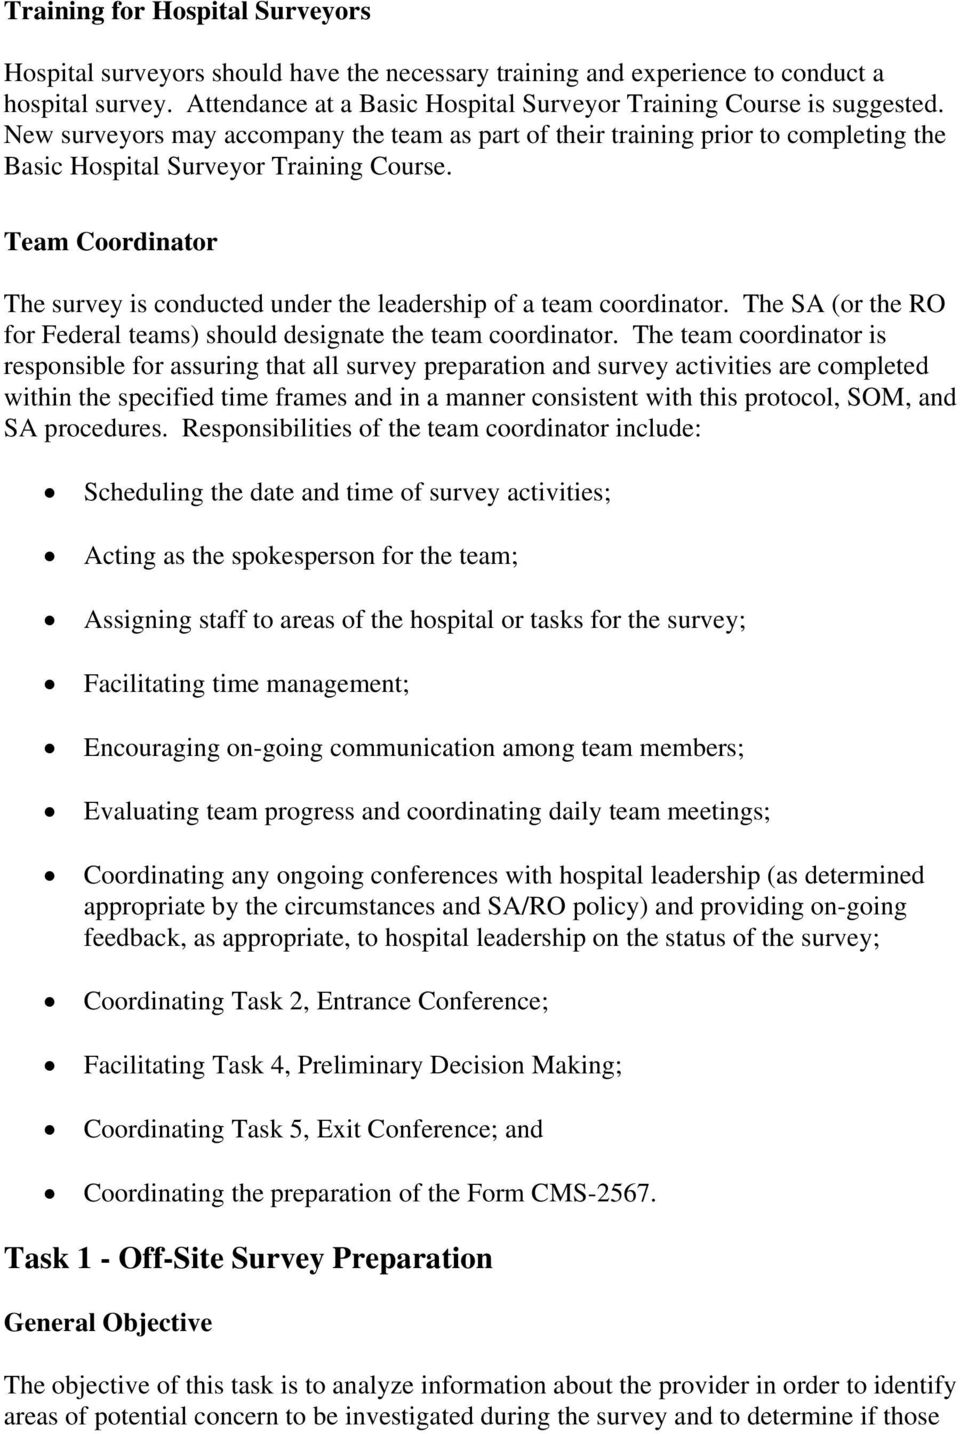 Team Coordinator The survey is conducted under the leadership of a team coordinator. The SA (or the RO for Federal teams) should designate the team coordinator.